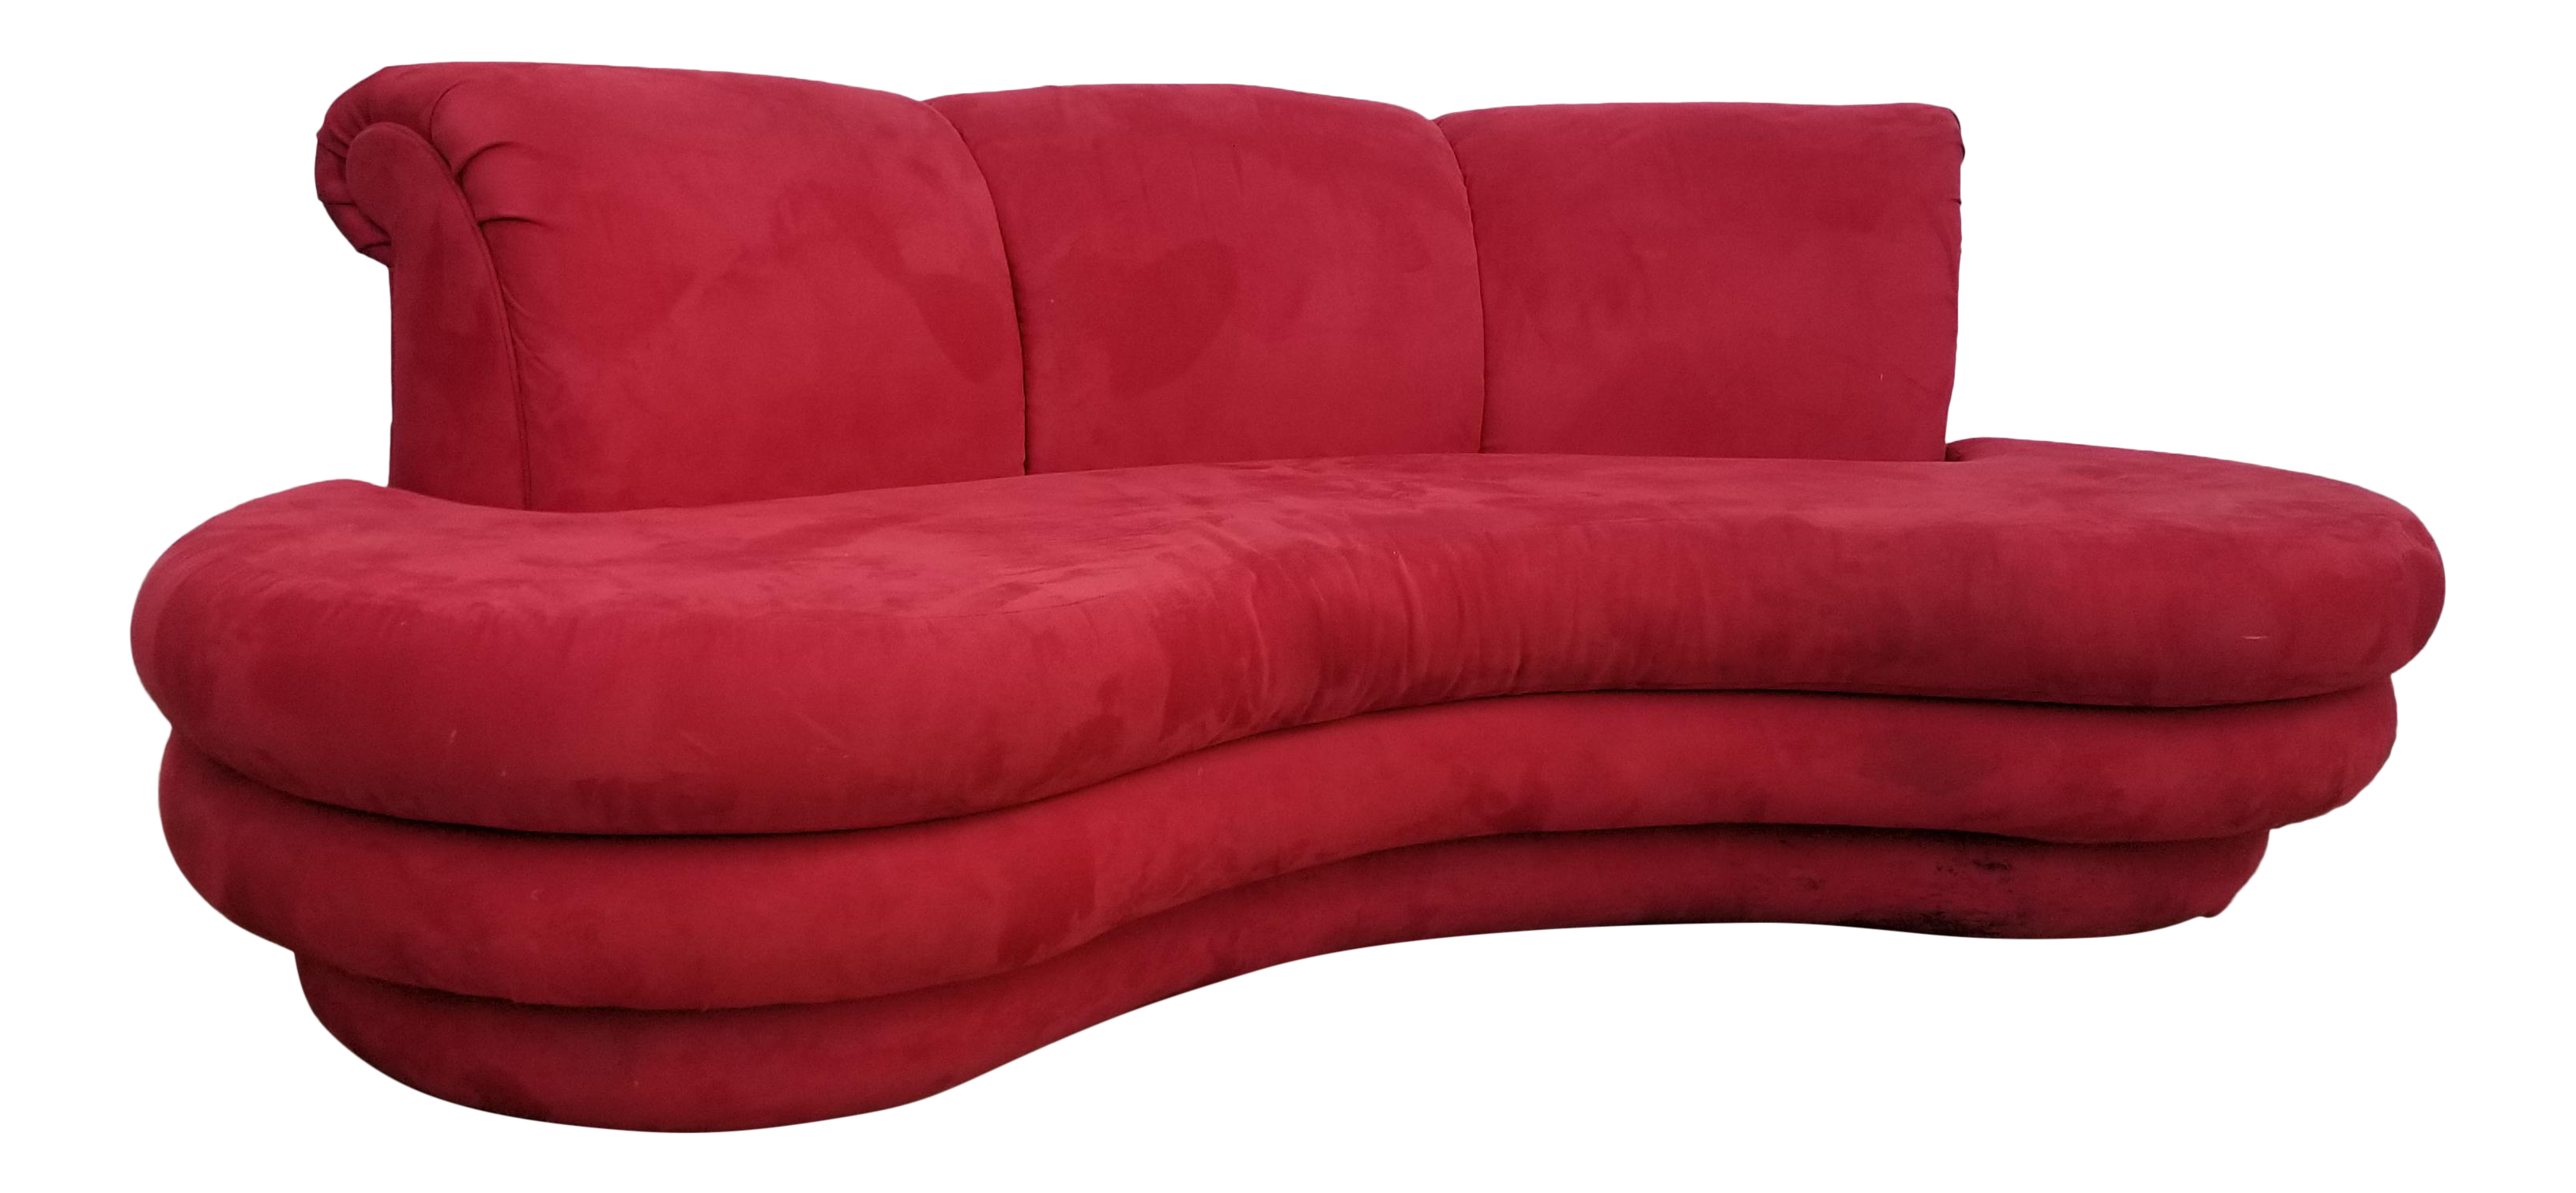 red curved sofa – Home and Textiles